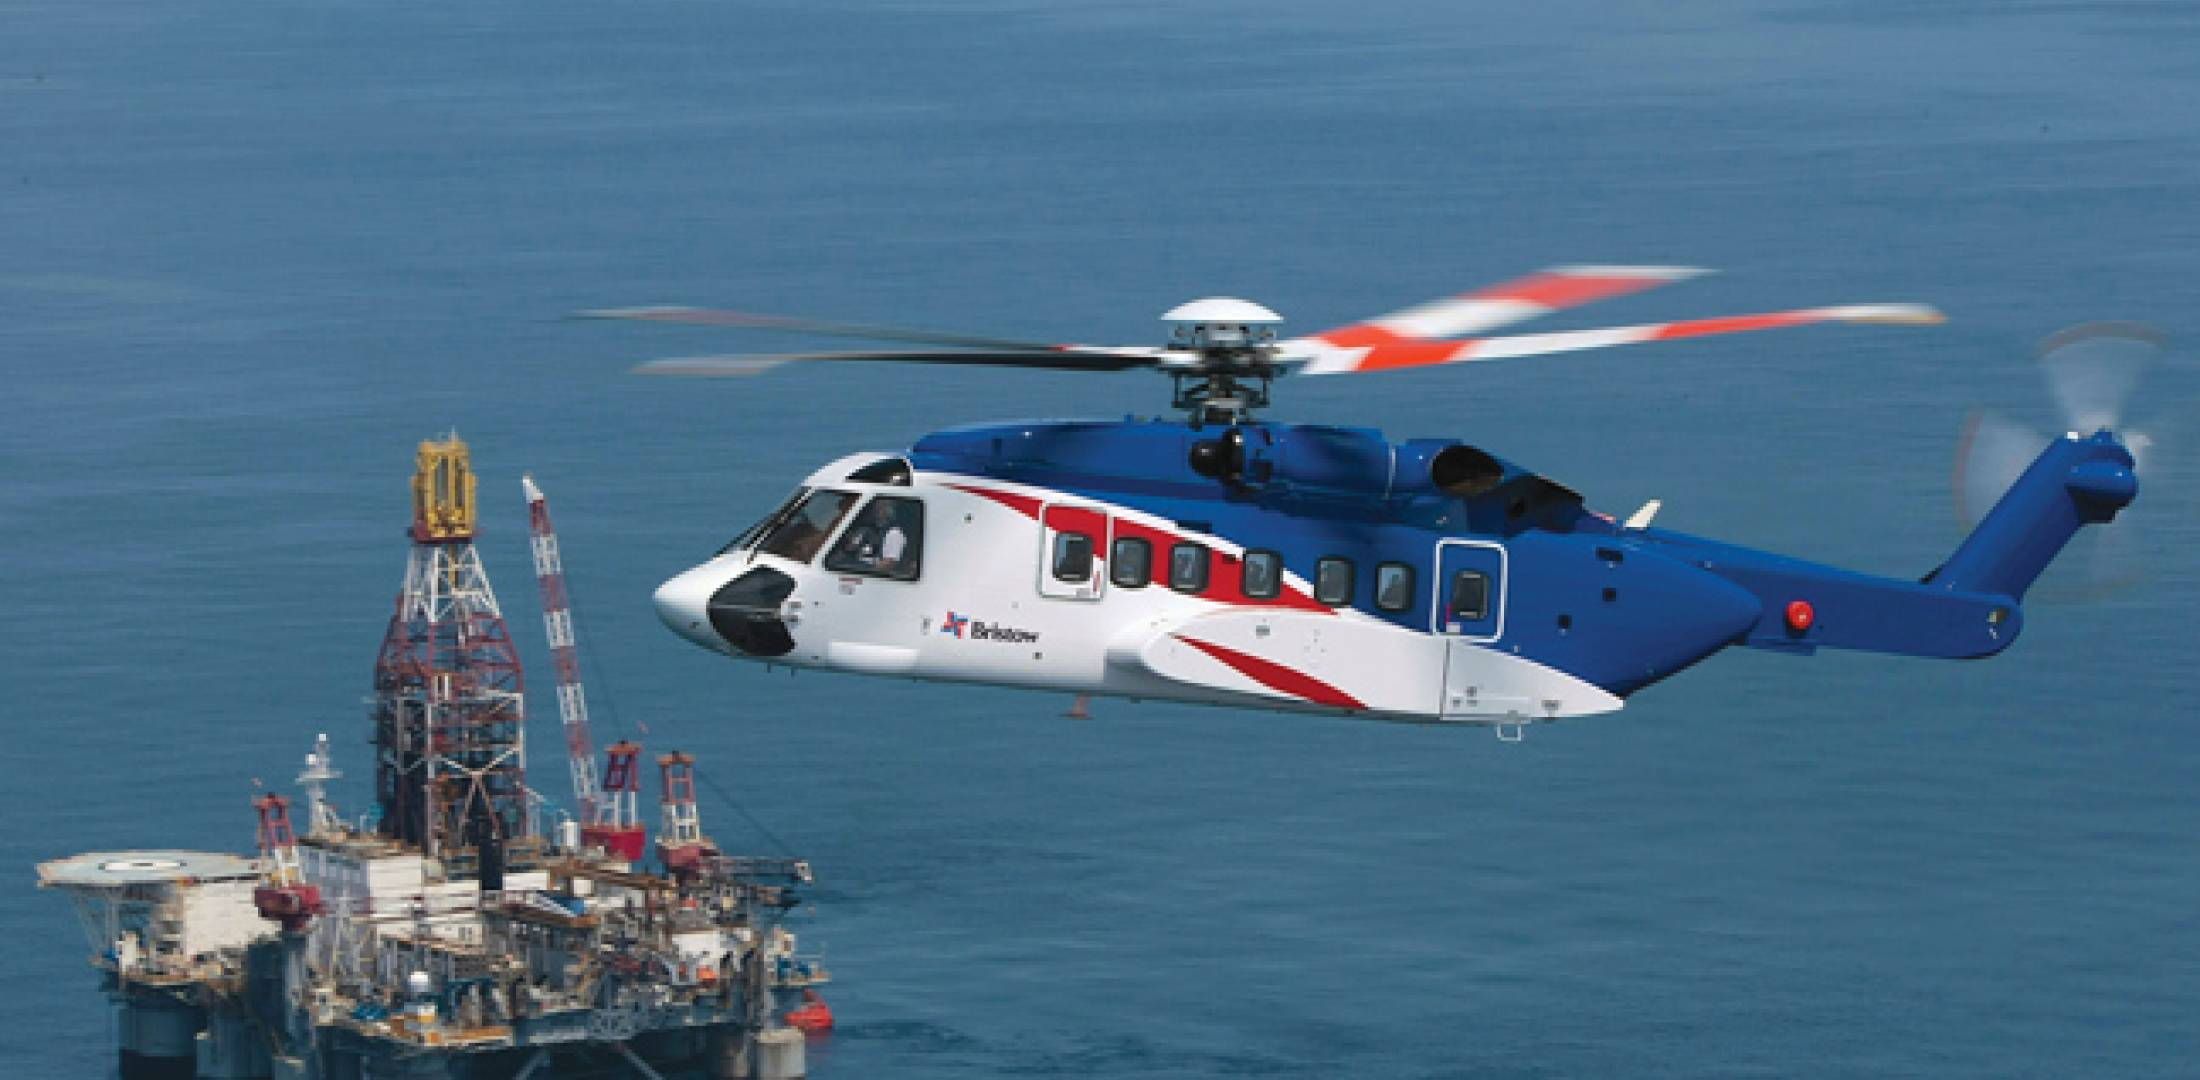 The continued boost in the oil and gas industry is driving the need for offshore helicopters, such as this Sikorsky S-92, and advanced simulators to train the flight crews.